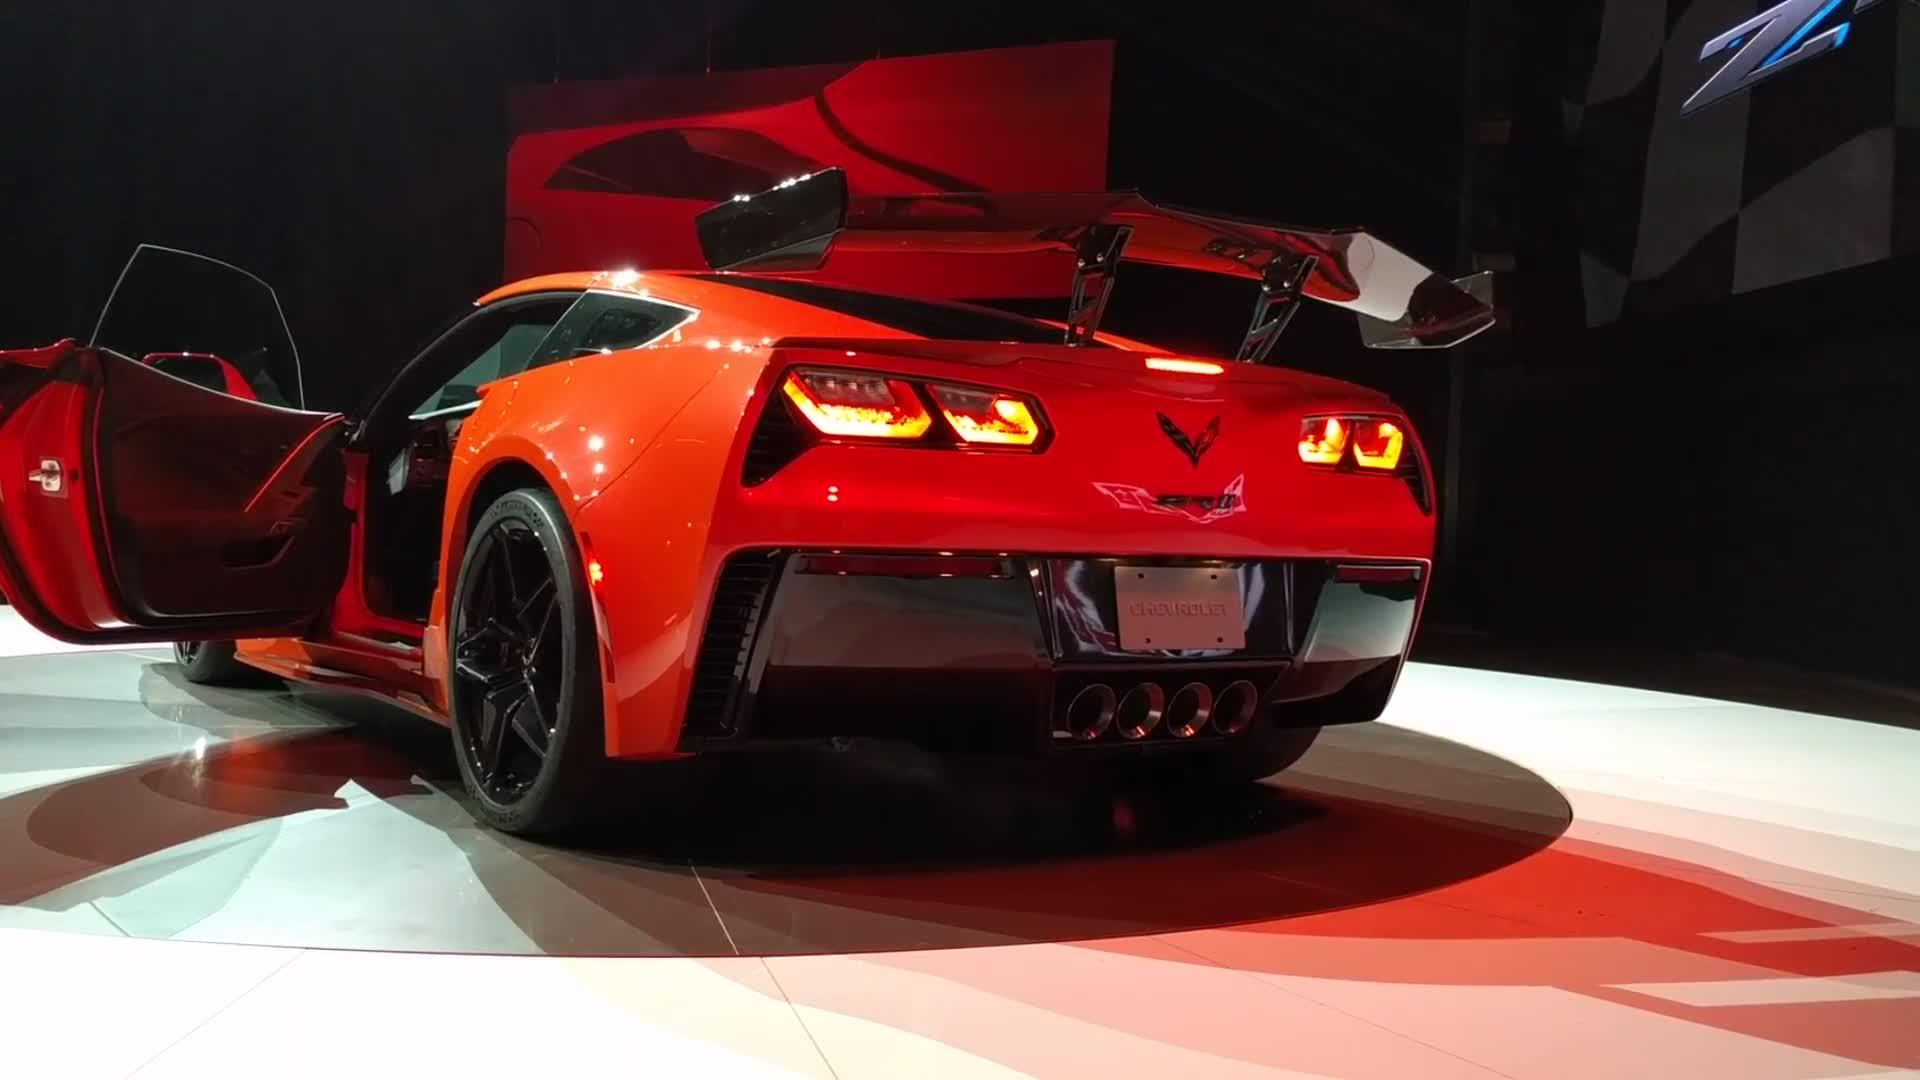 Chevy Corvette Zr1 Will Be The Indy 500 Pace Car Autoblog